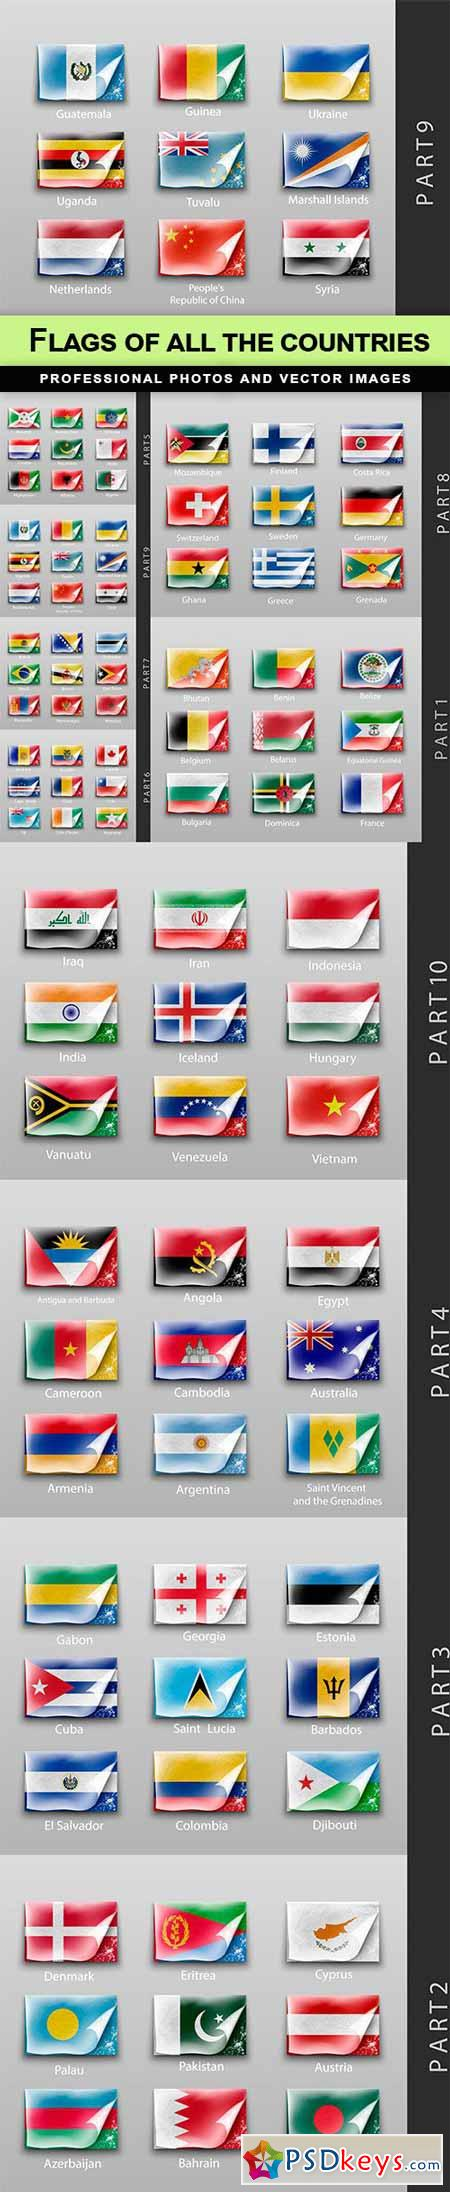 Flags of all the countries - 10 EPS